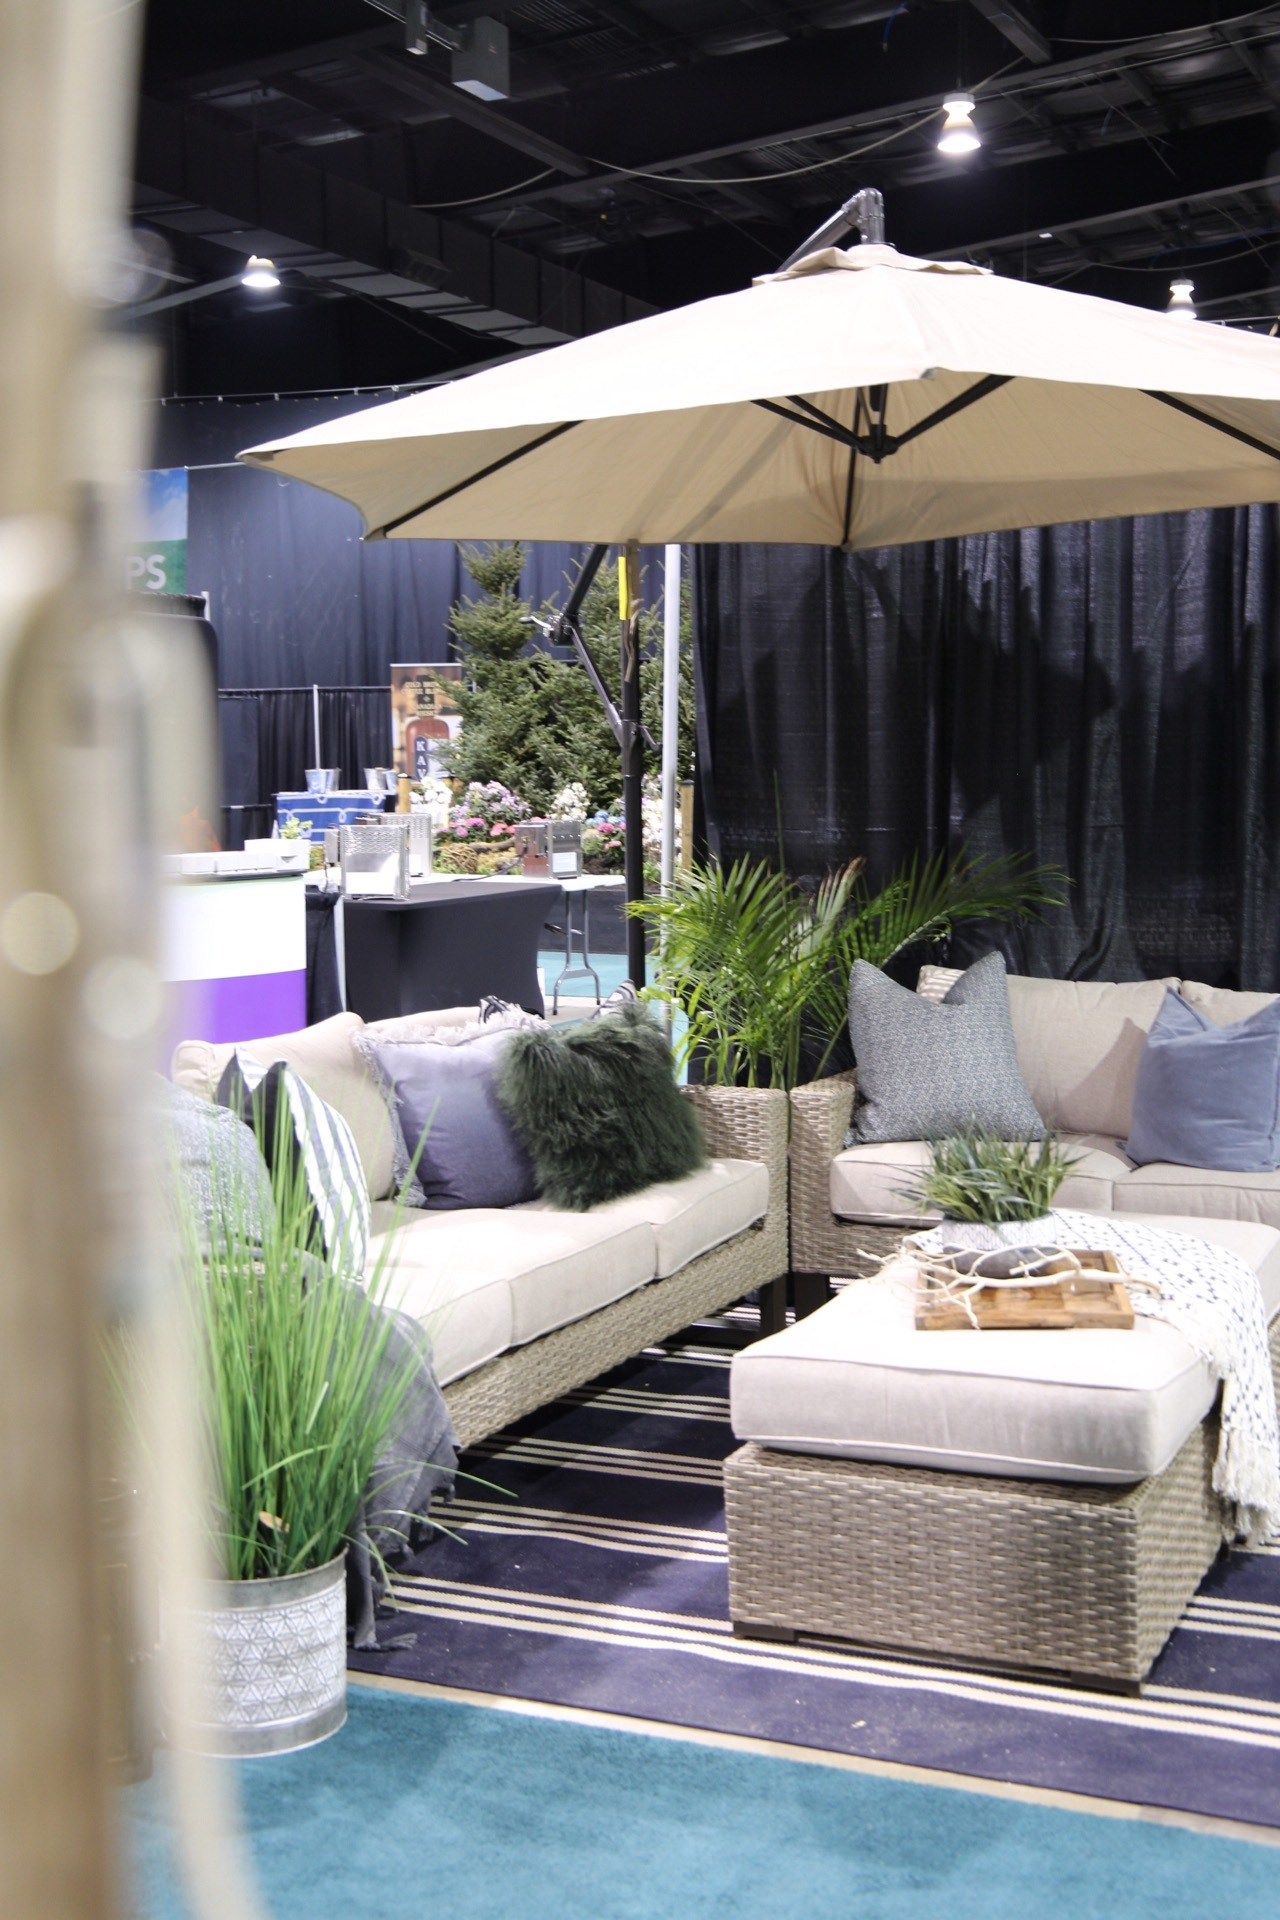 jaclyn harper/ harper designs/ backyard living expo